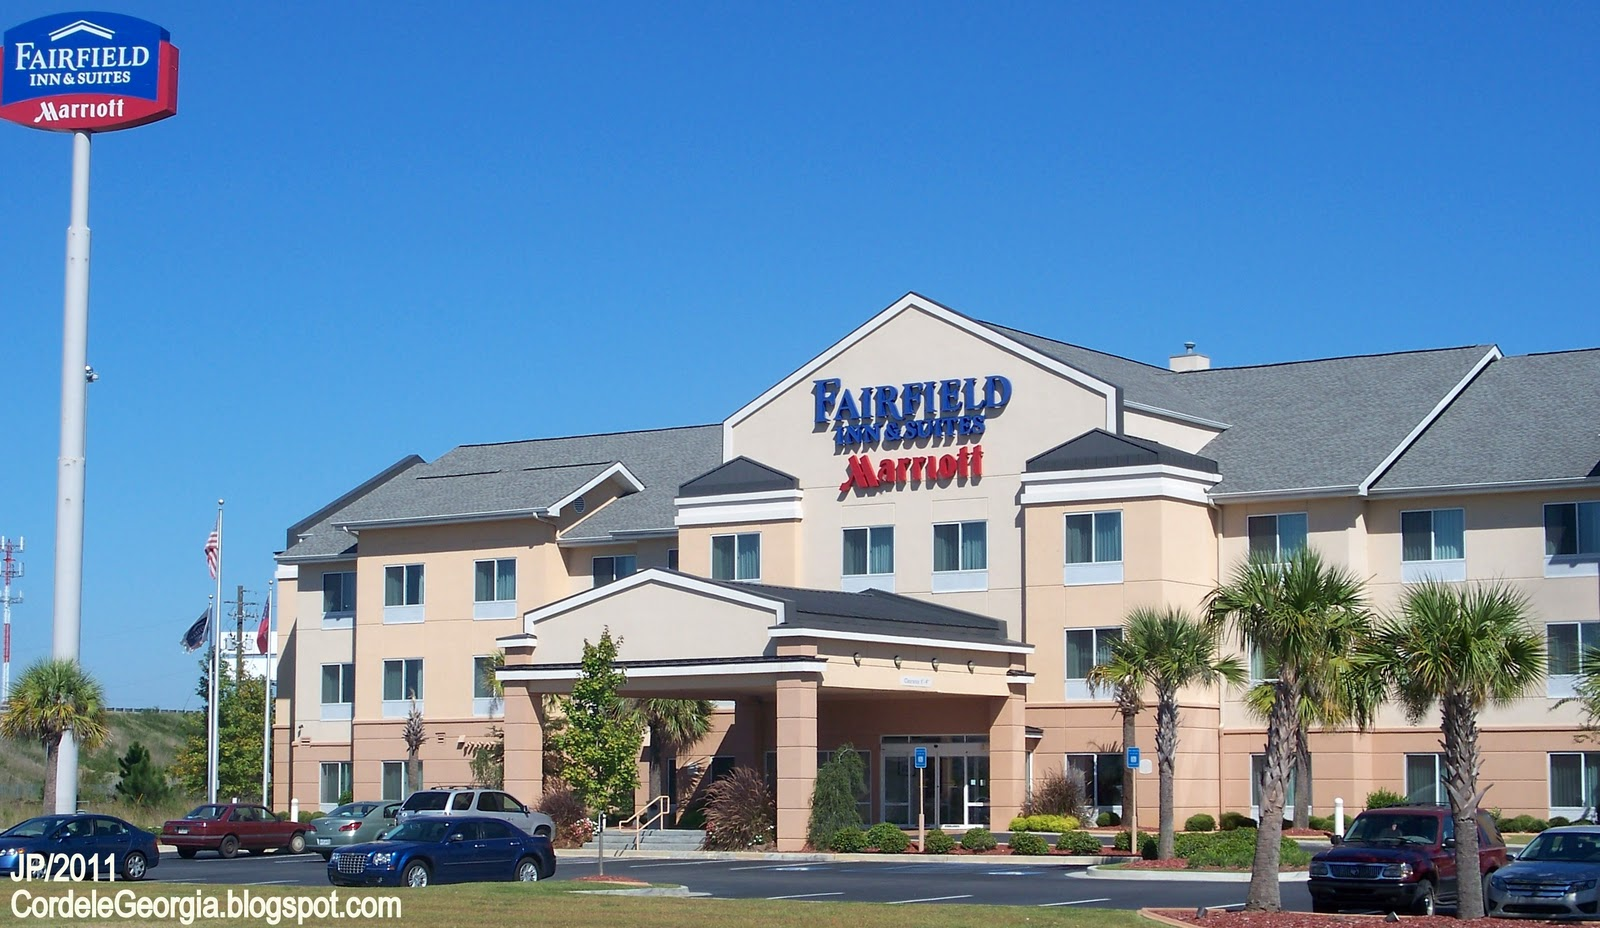 More Photos From Fairfield Inn And Suites